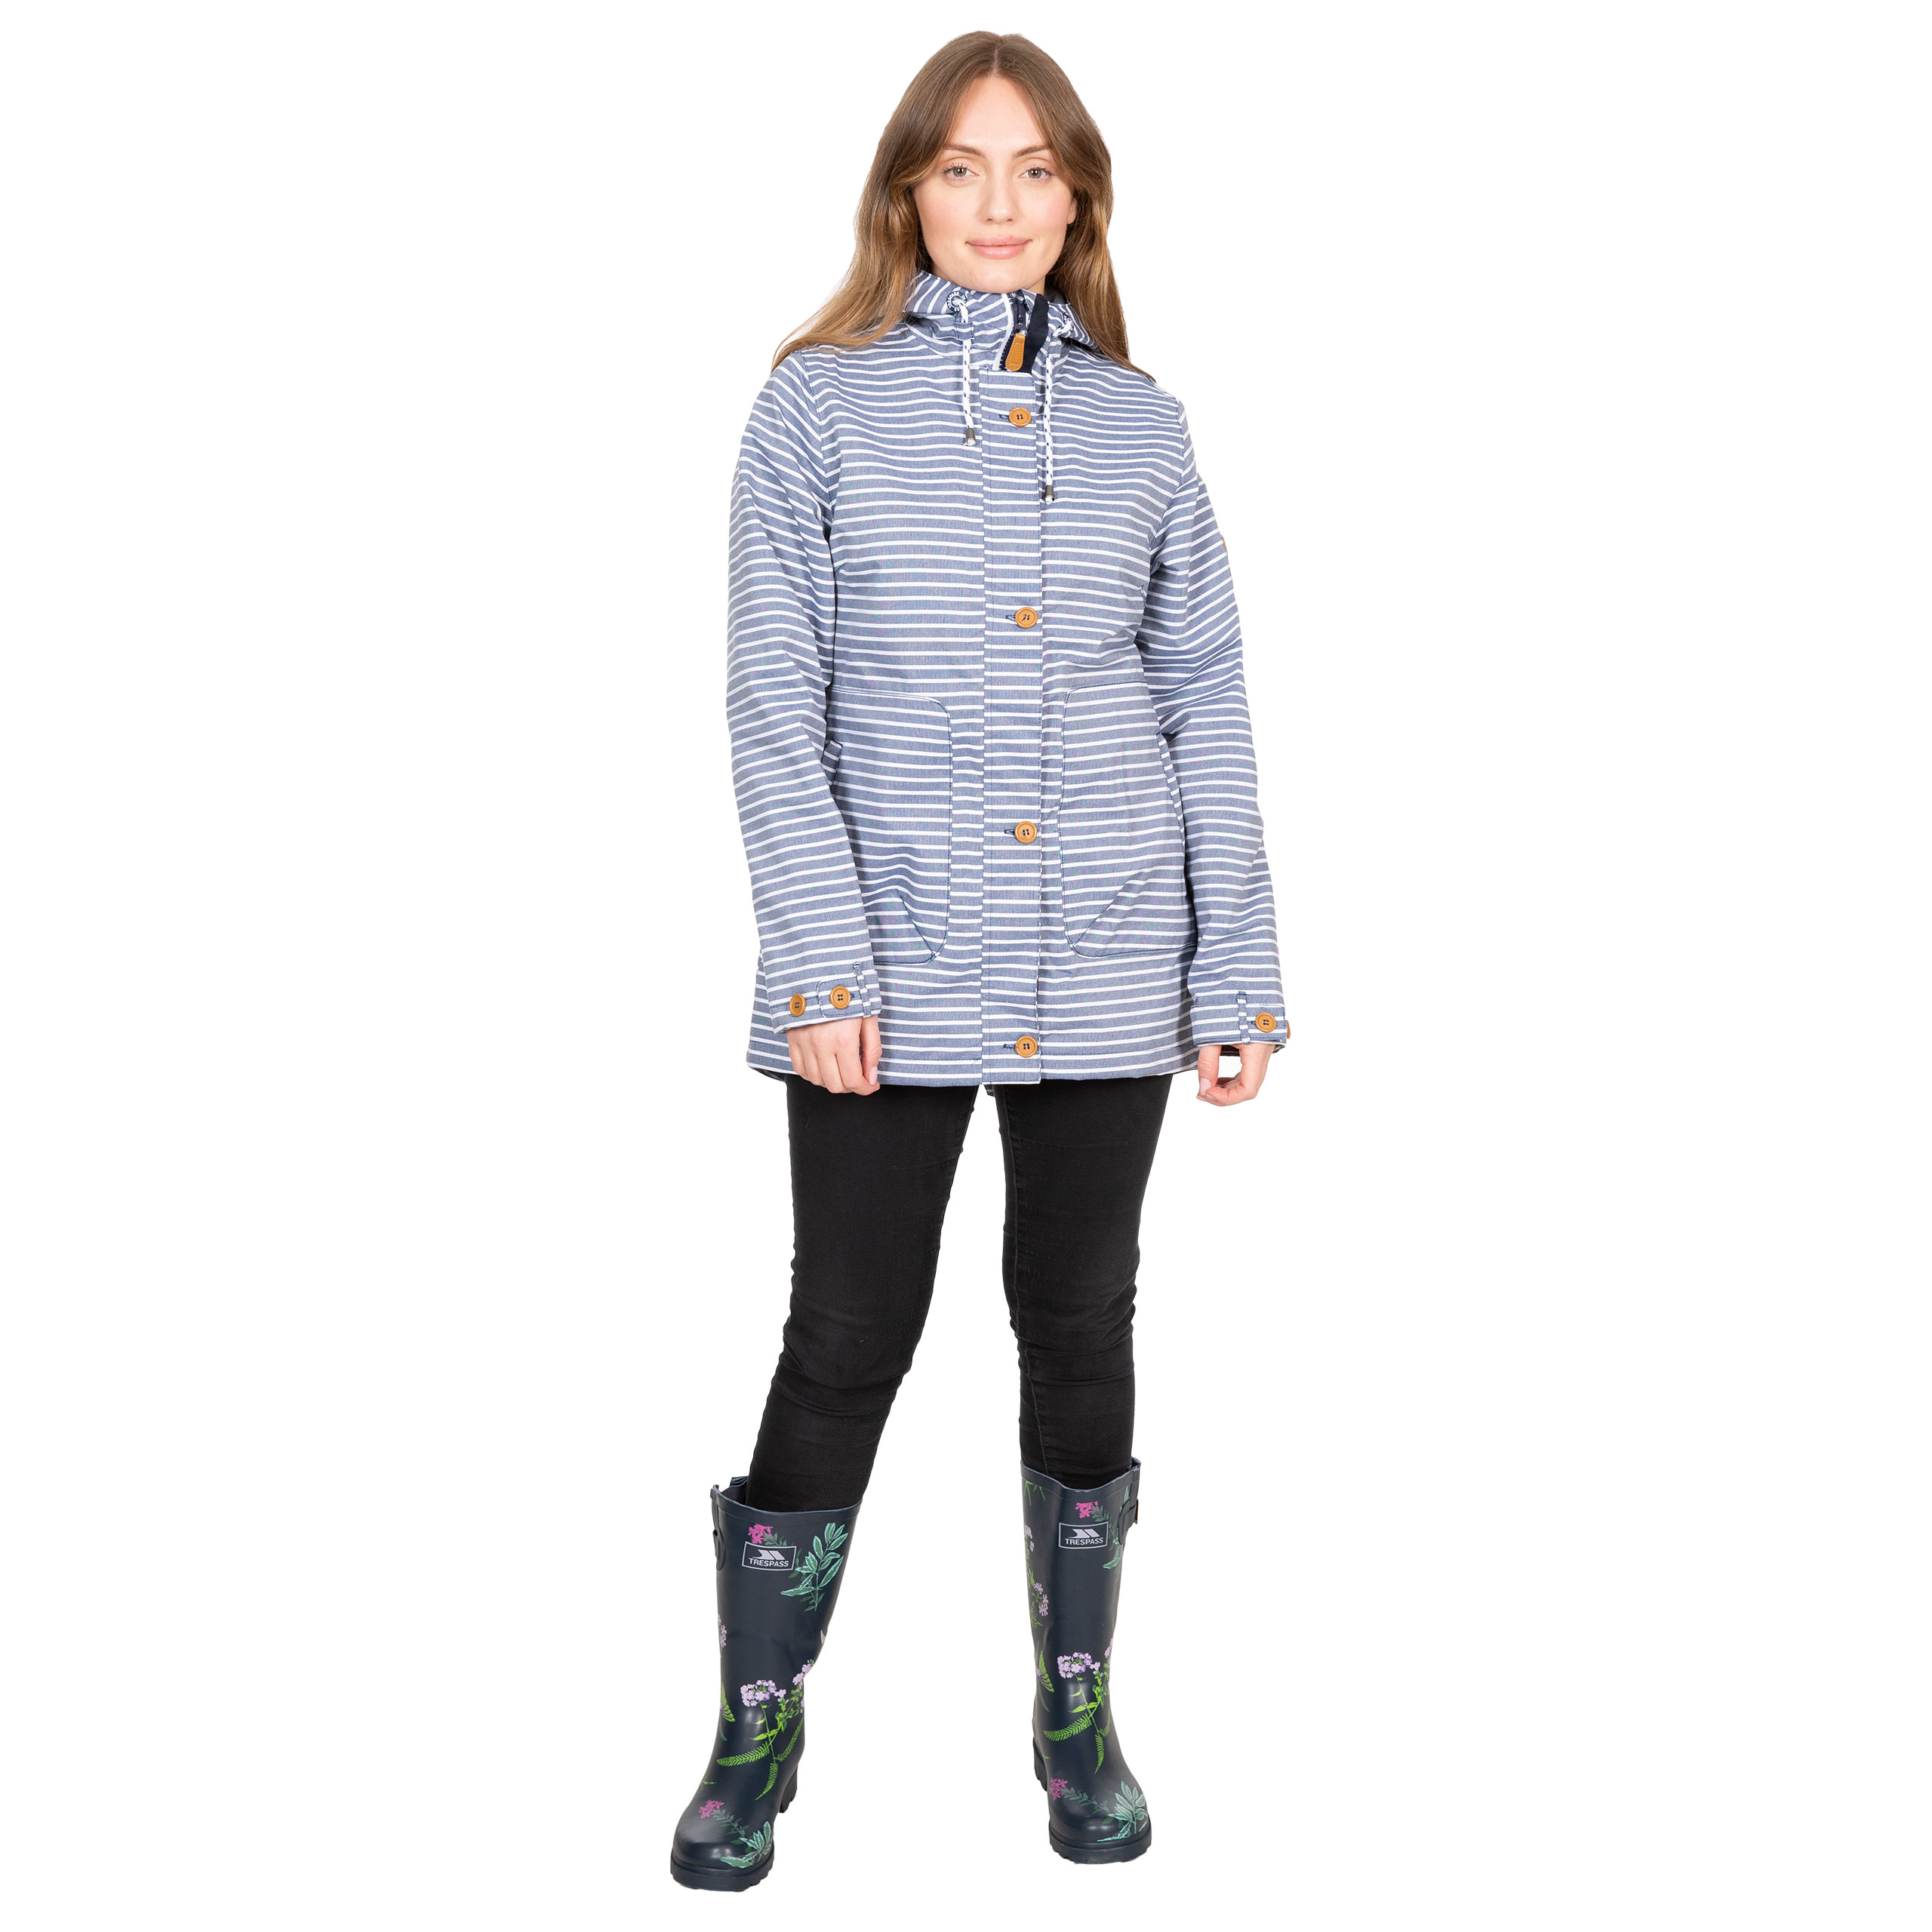 Trespass-Womens-Waterproof-Jacket-Longline-Stripe-Raincoat-with-Hood-Offshore thumbnail 3